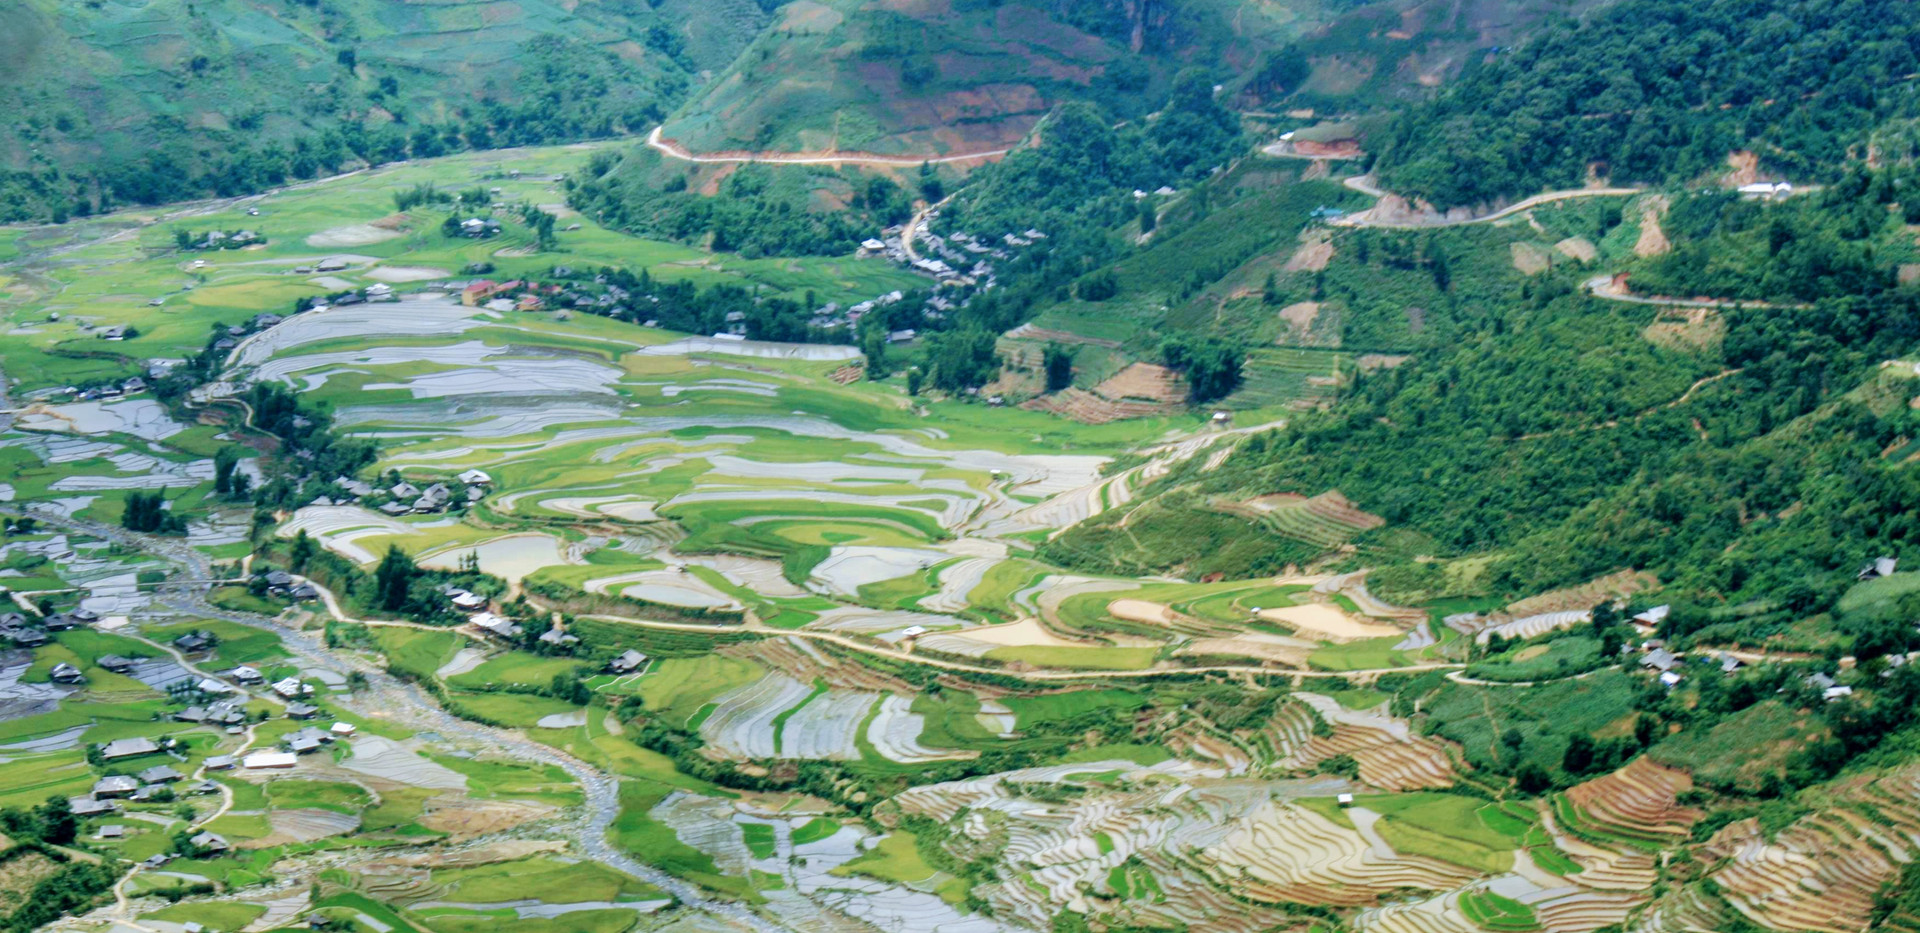 Wonderfull rice fields in mu cang chai